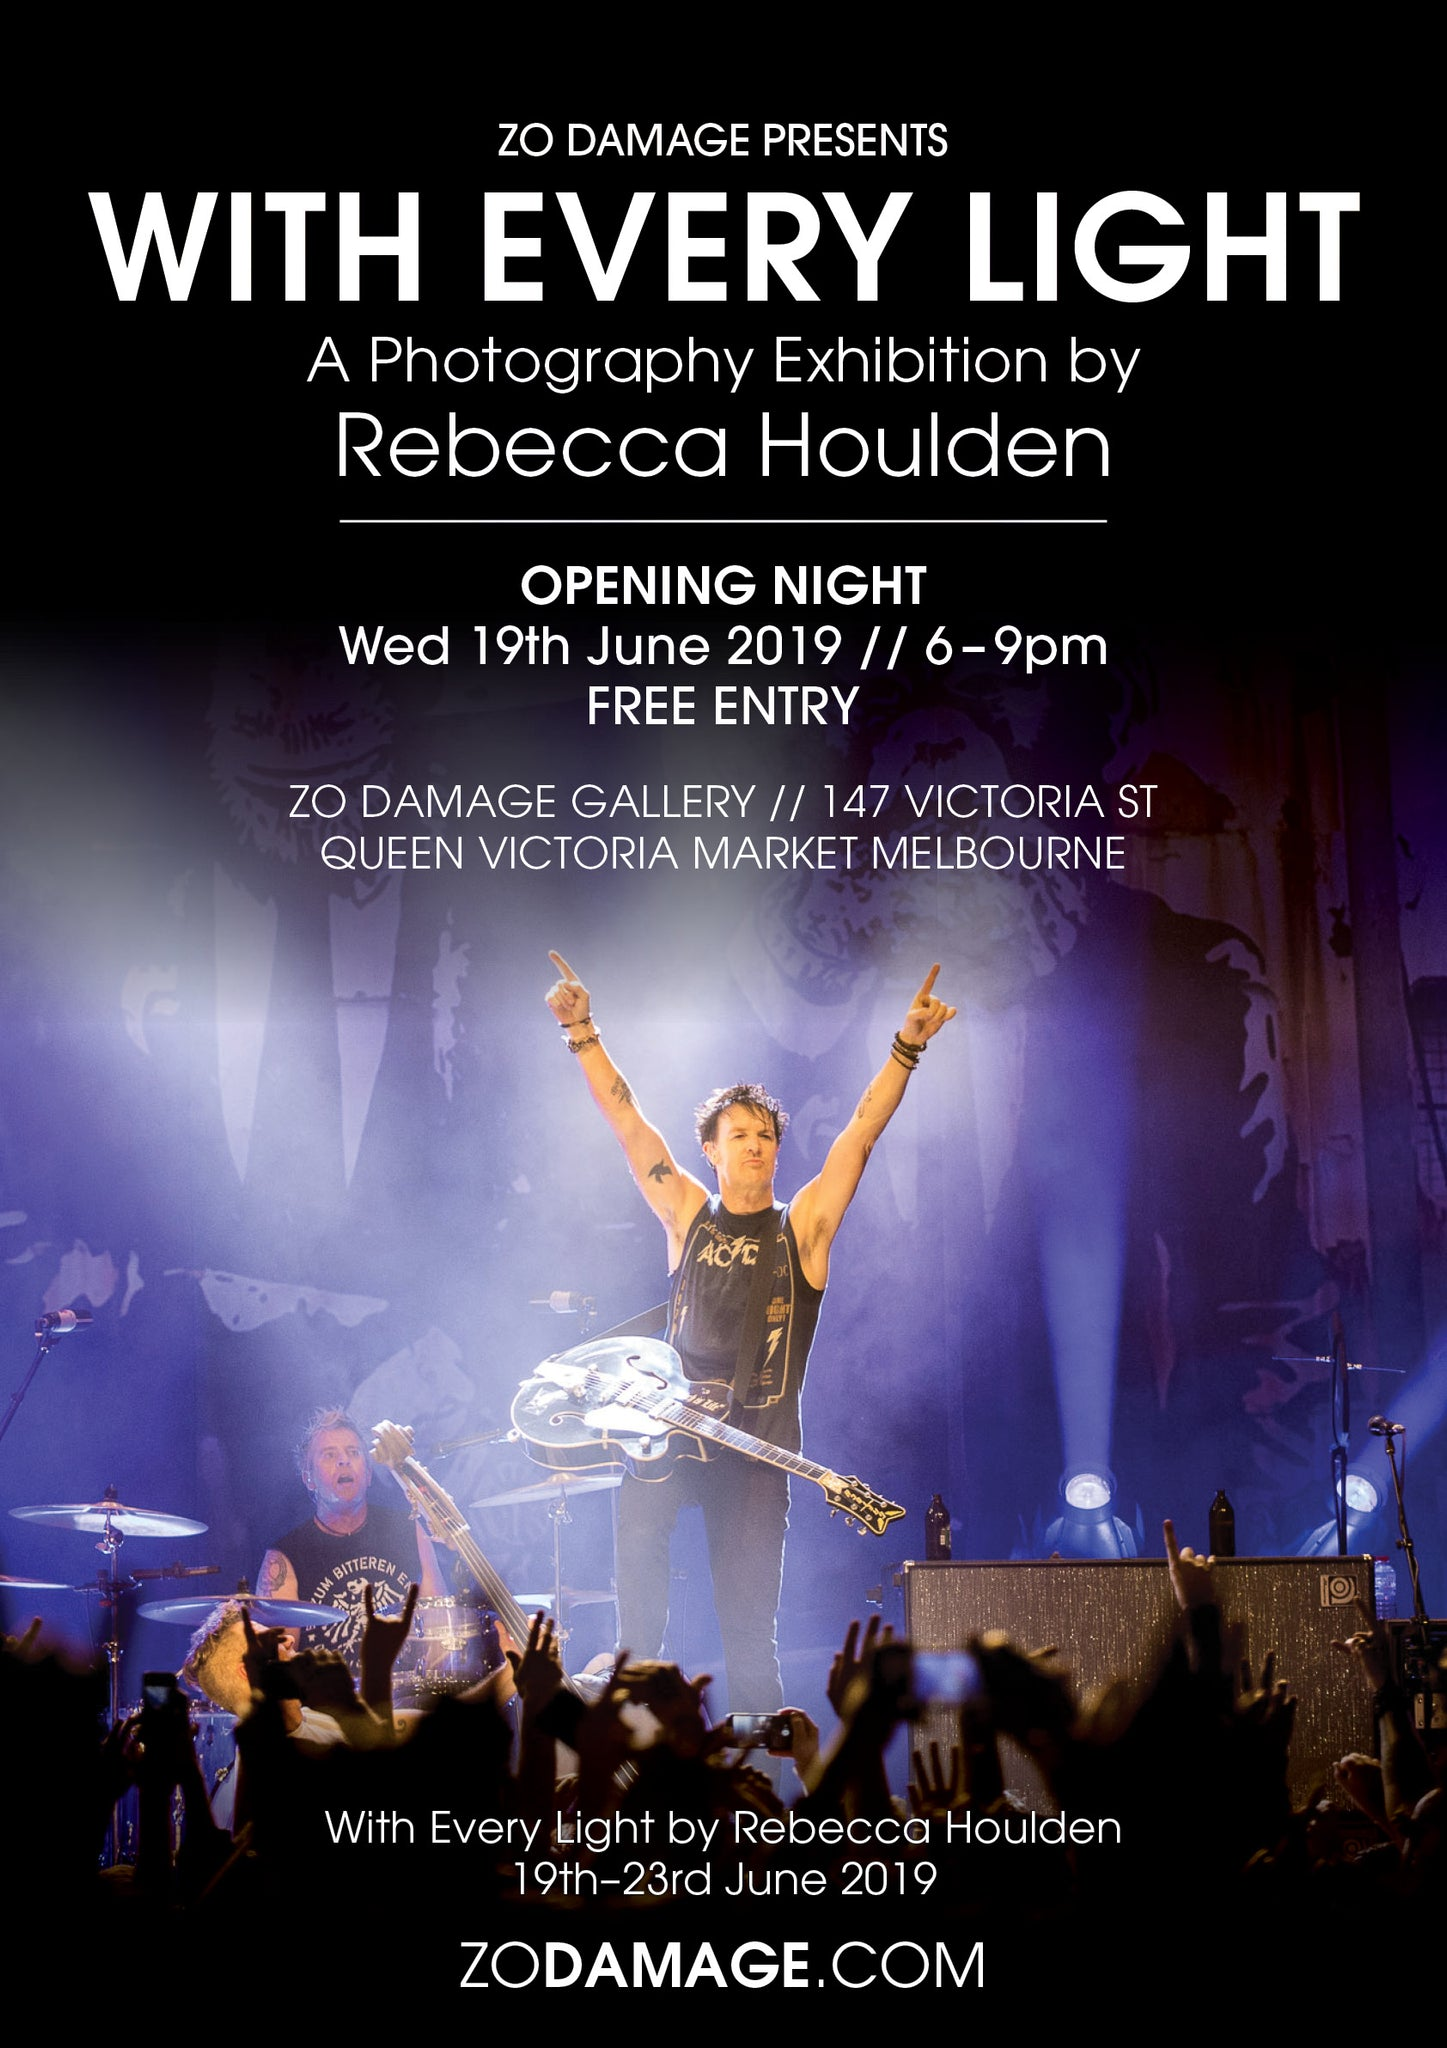 Rebecca Houlden photography exhibition presented by Zo Damage